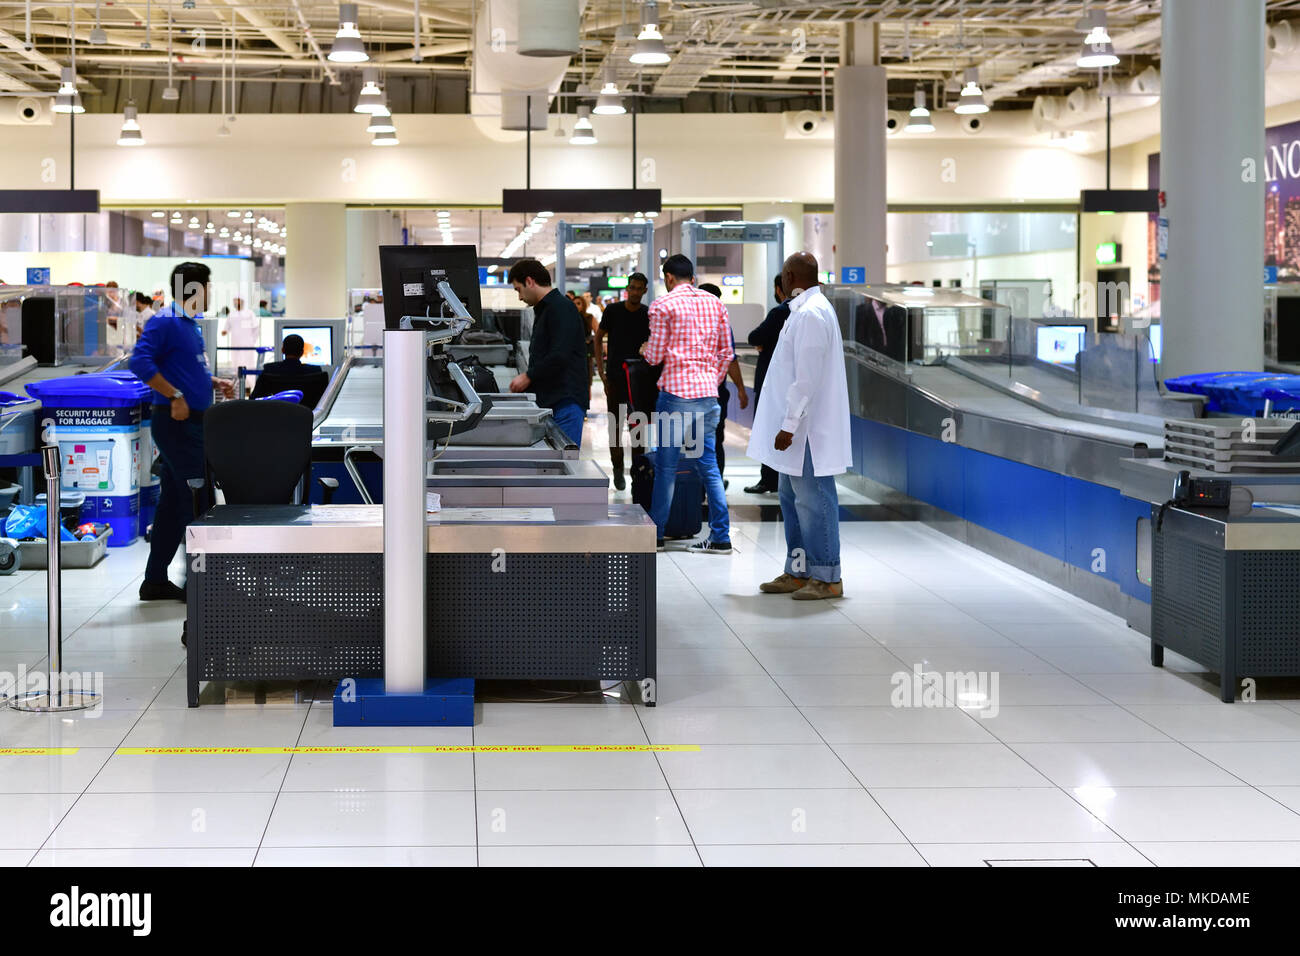 Dubai, UAE - April 10. 2018. pre-flight inspection zone at airport - Stock Image